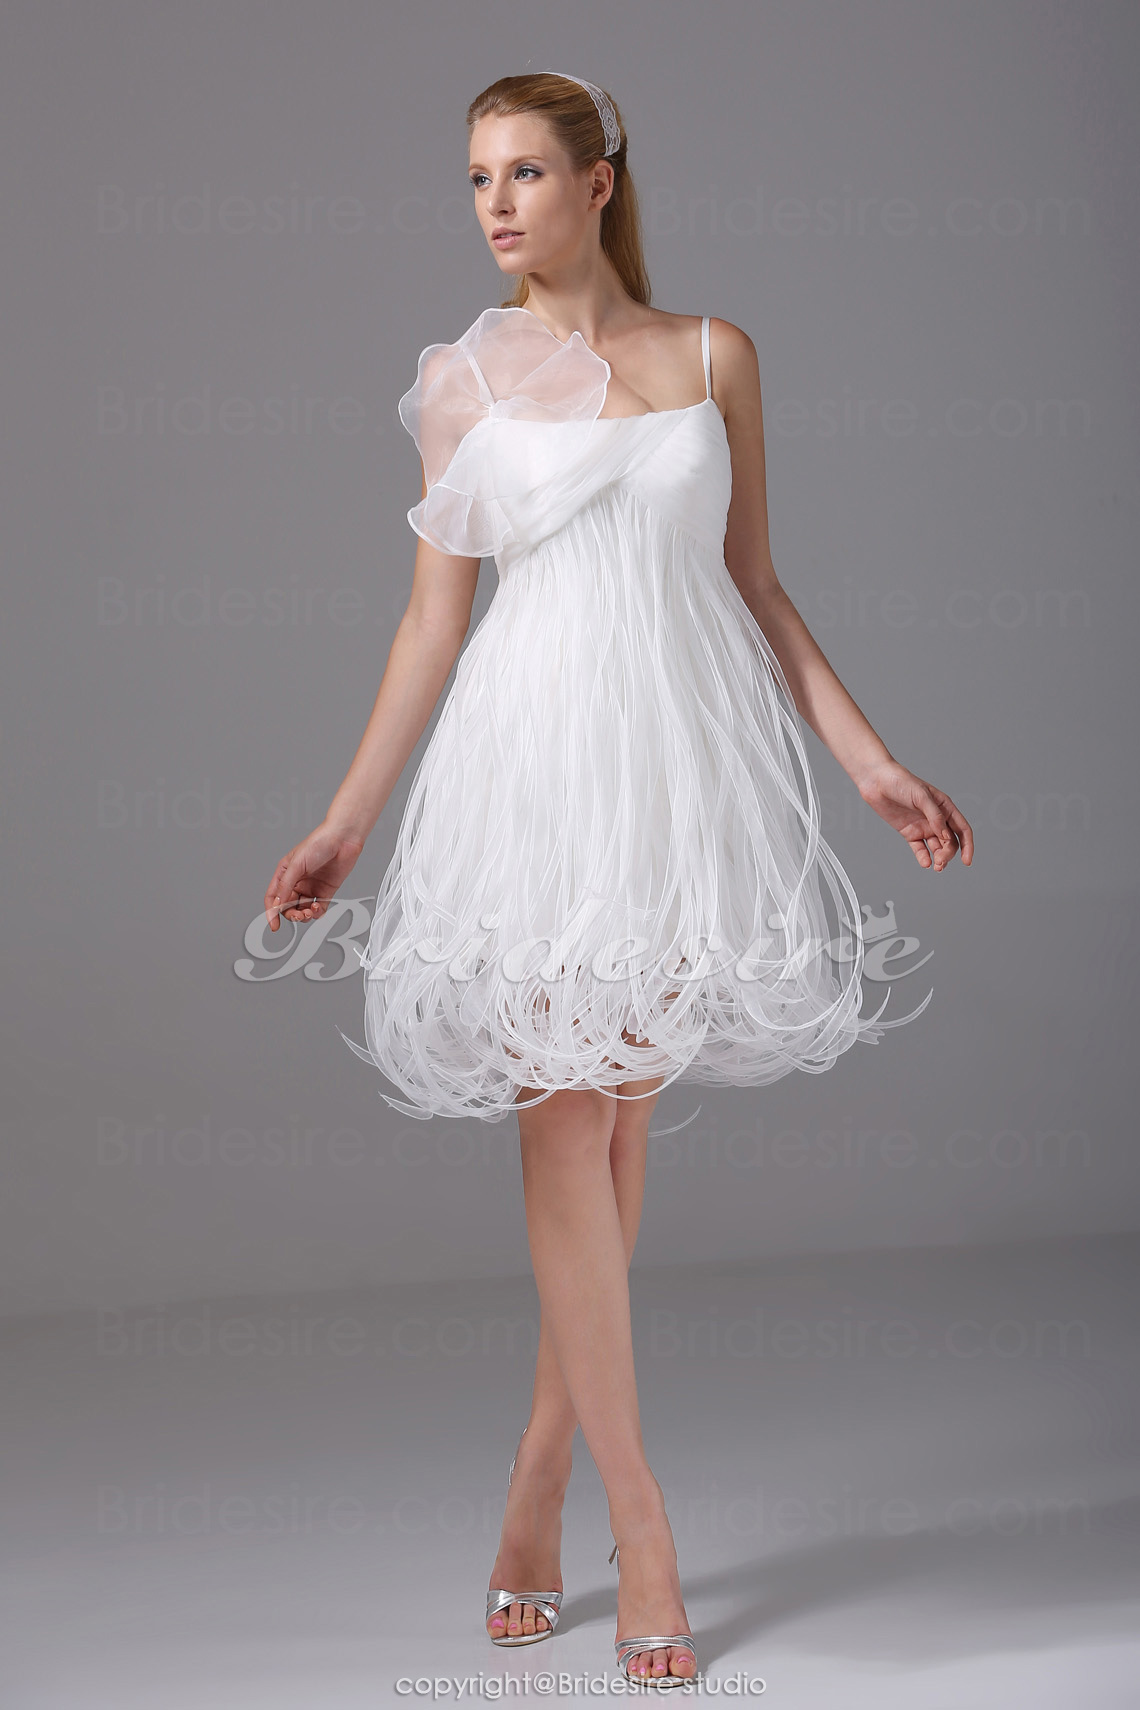 A-line Spaghetti Straps Short/Mini Sleeveless Organza Dress